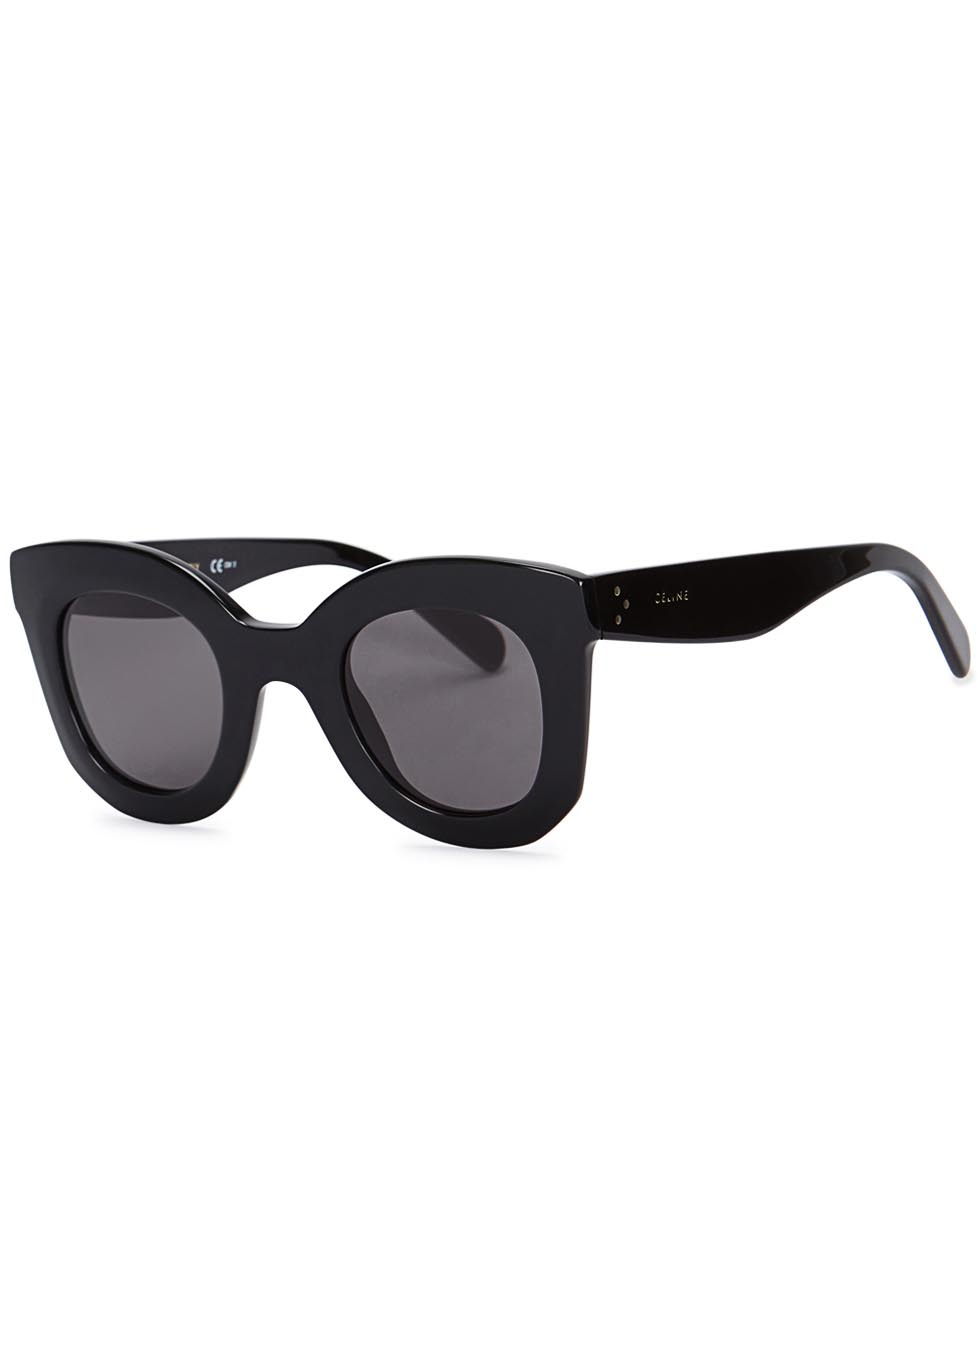 c60f3efd5667 Gallery. Previously sold at  Harvey Nichols · Women s Turquoise Sunglasses  ...